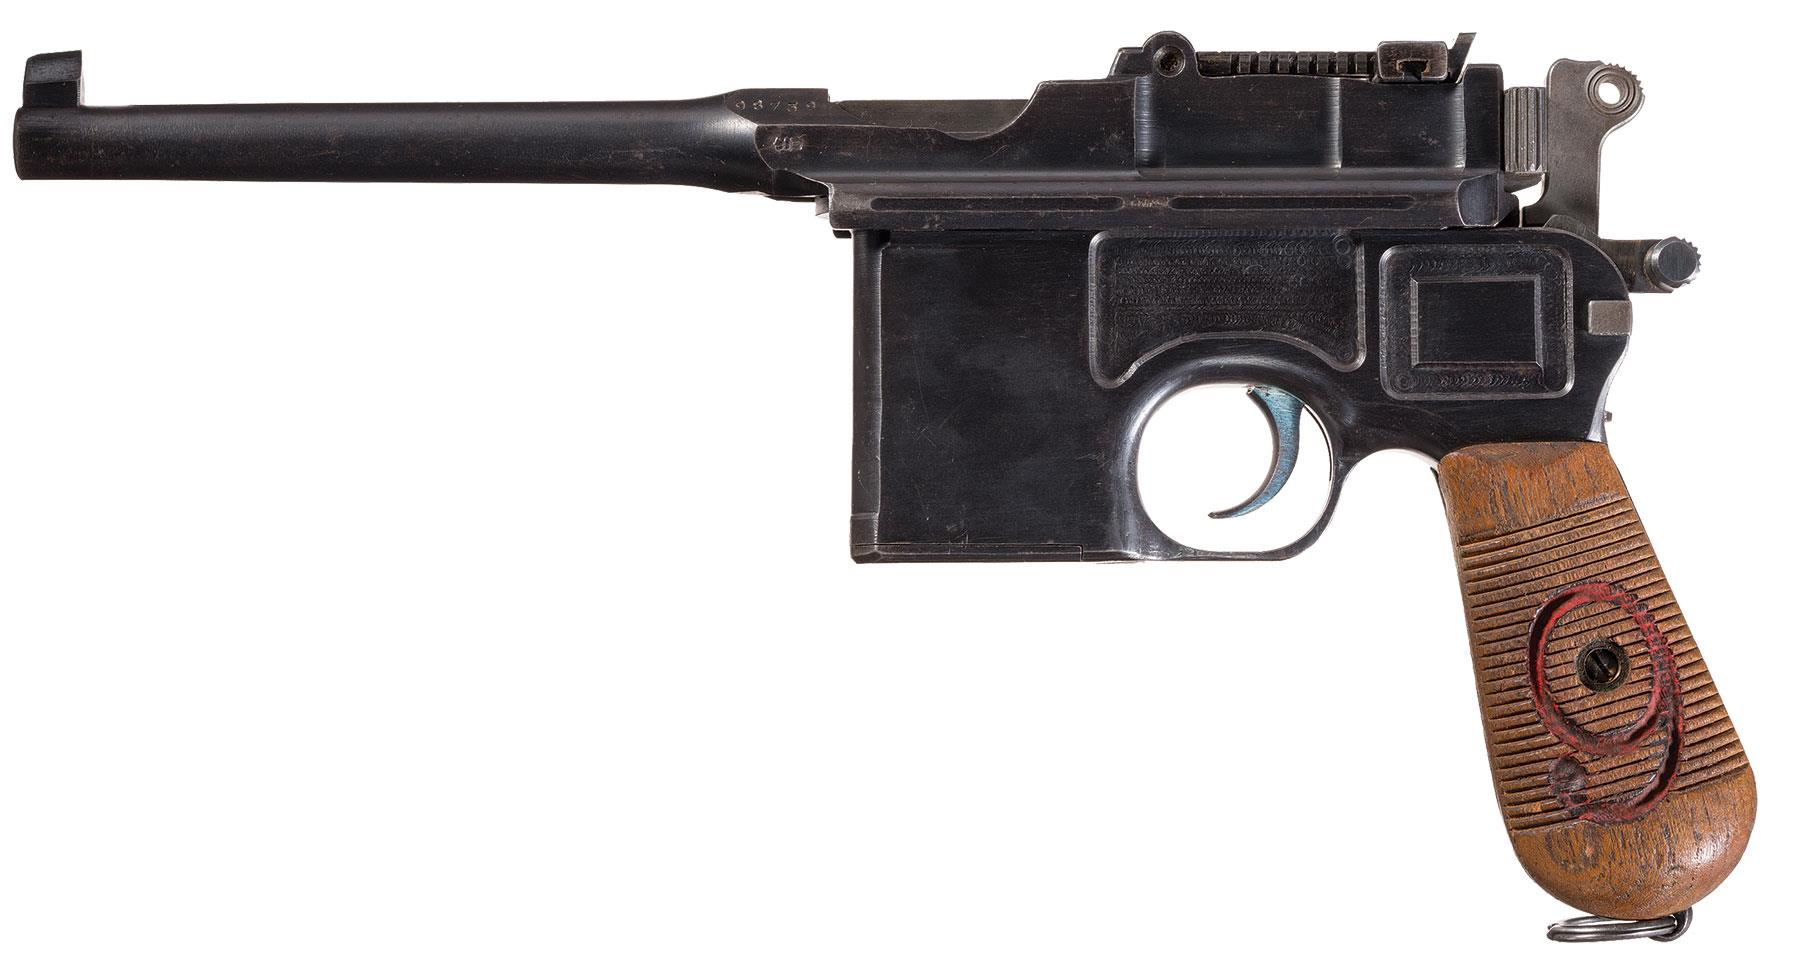 Mauser 1896 red nine military broomhandle pistol pistol firearms auction lot 733